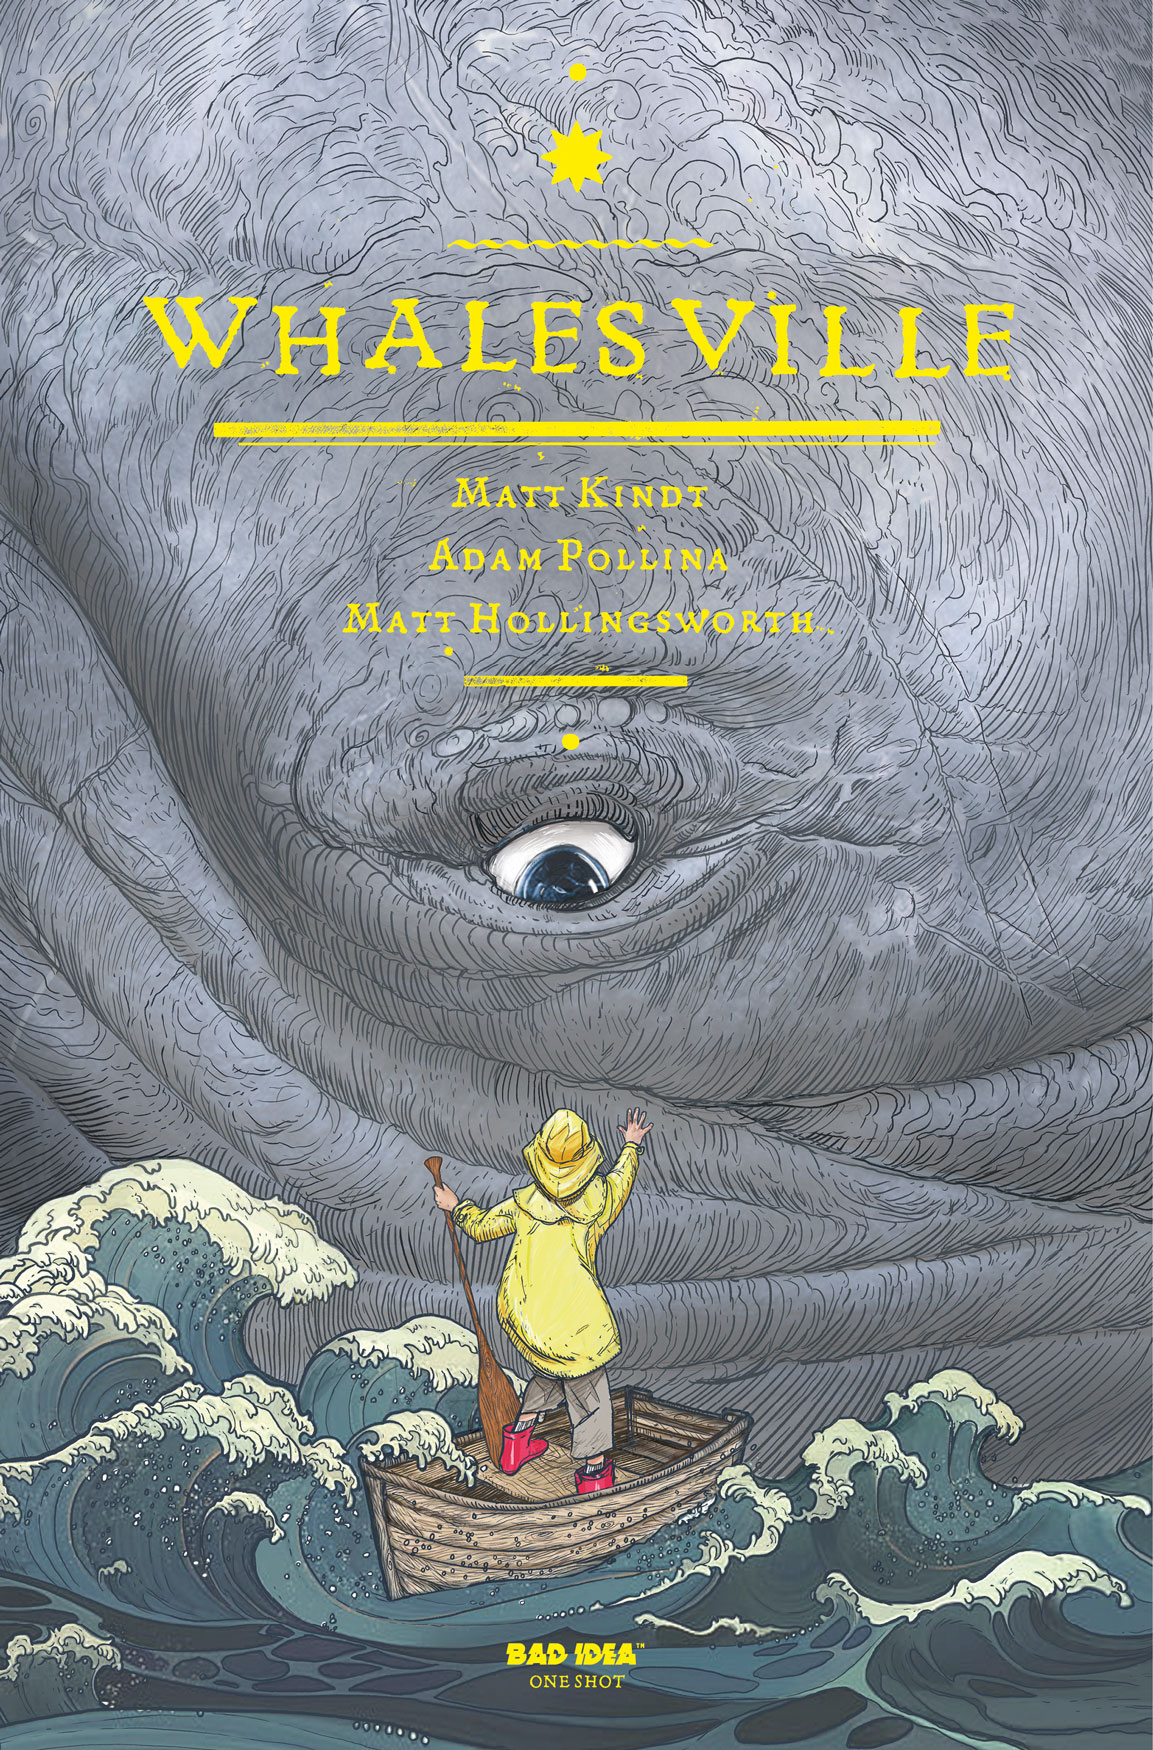 WHALES_001_COVER.jpg